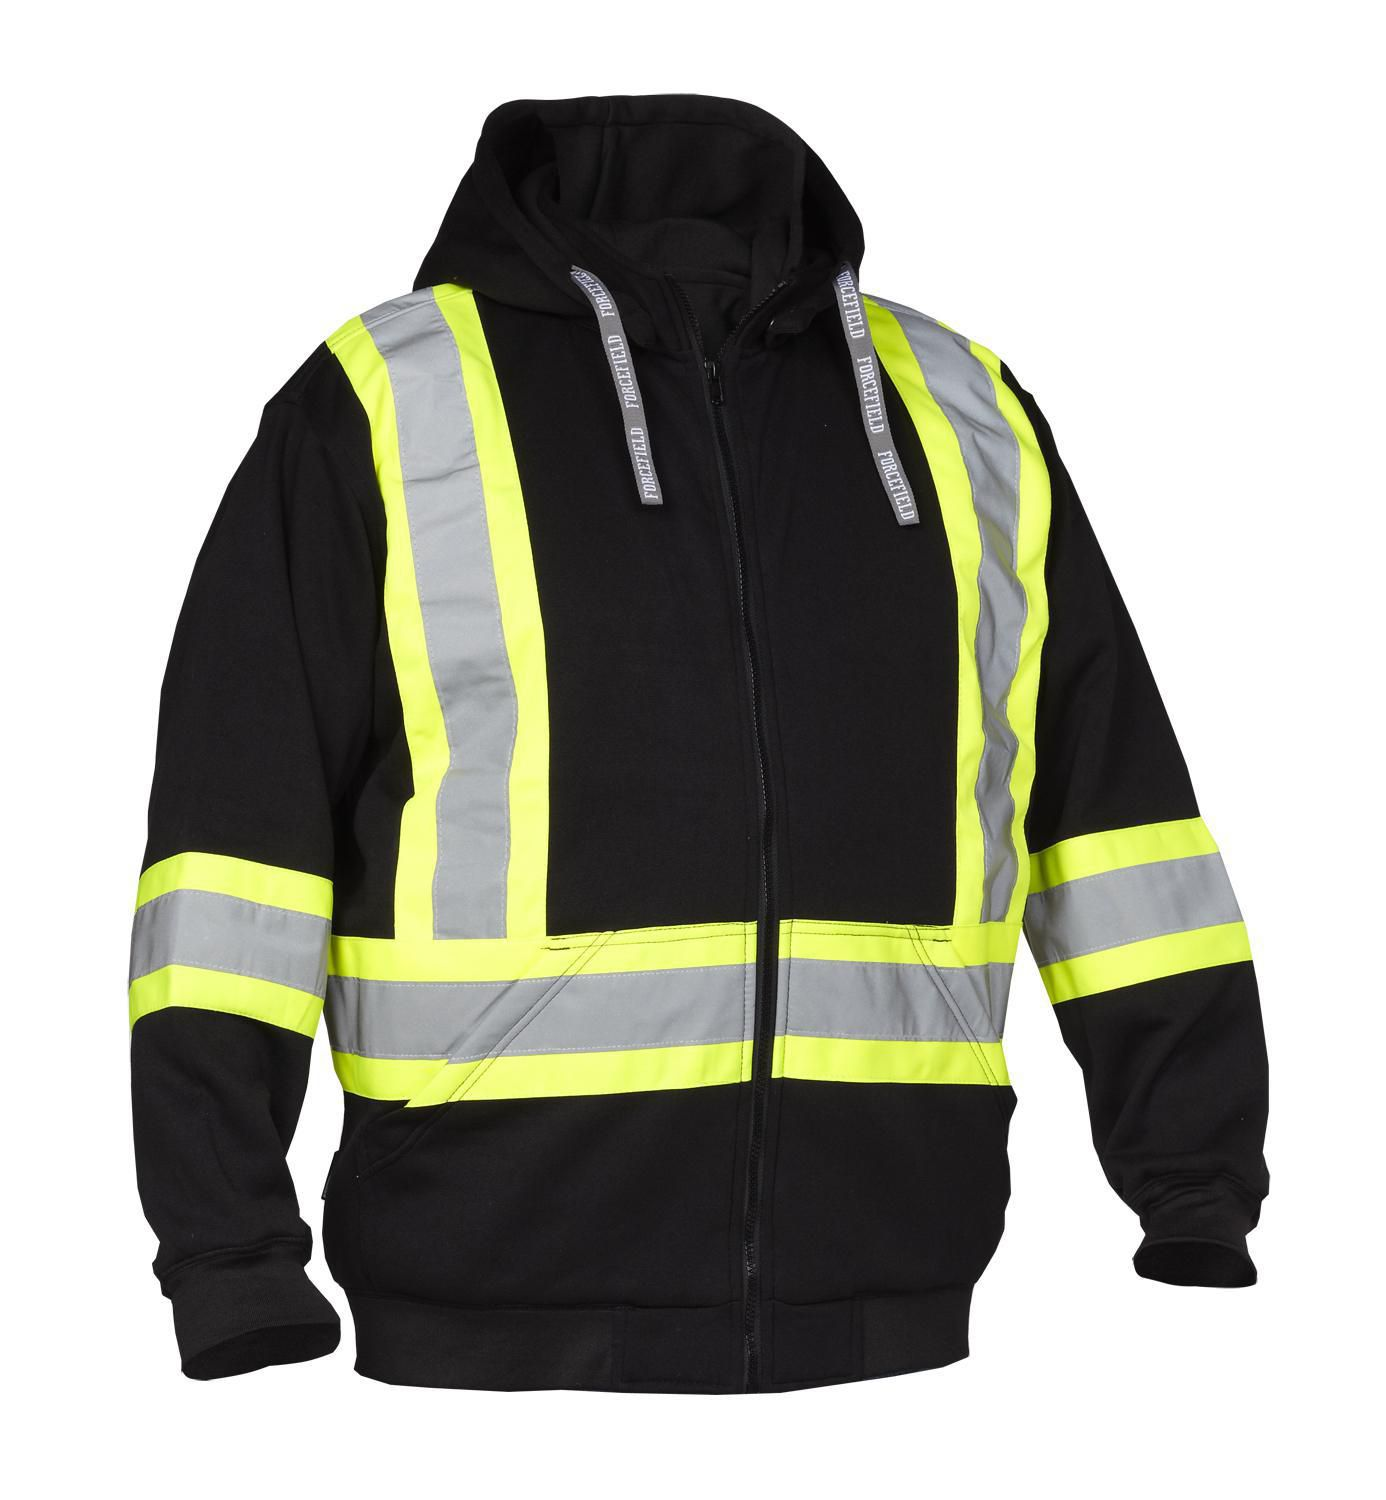 Forcefield Hi-Vis Safety Hoodie (Detachable Hood) 024-P814BK